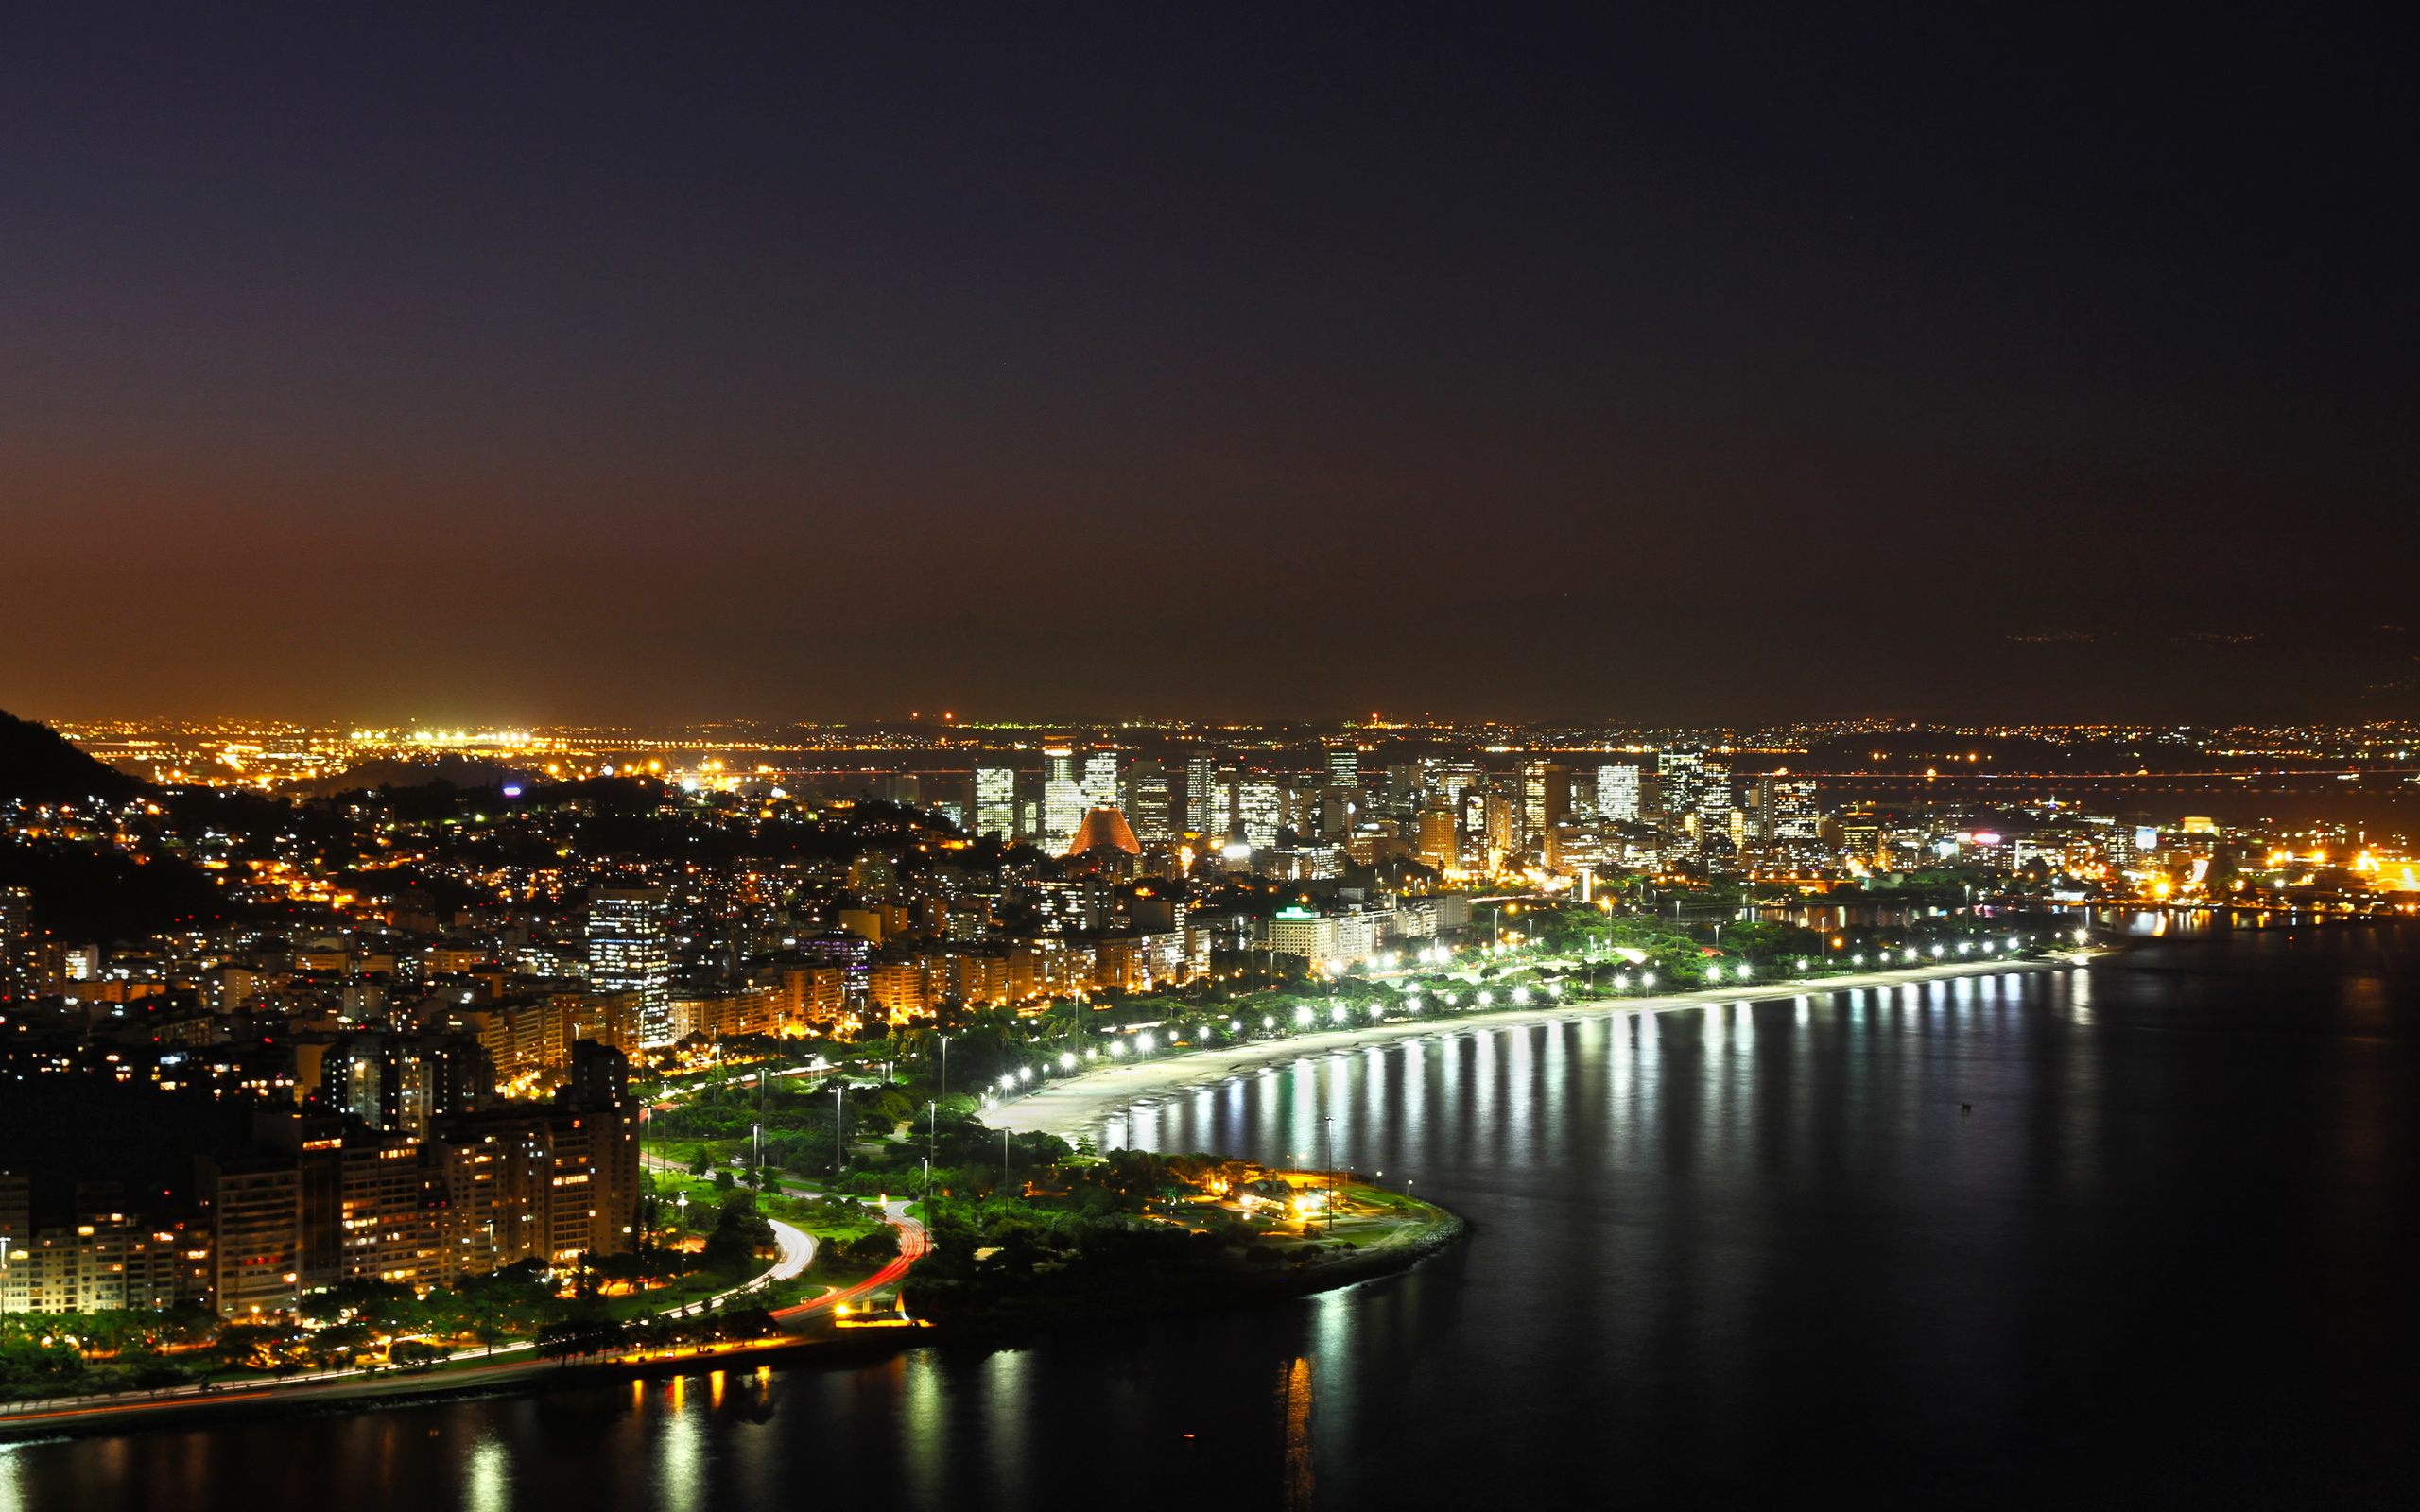 Download Wallpaper Macbook City - exciting-view-of-rio-de-janeiro-at-night-wallpaper-2560x1600-548  Graphic_42754.jpg